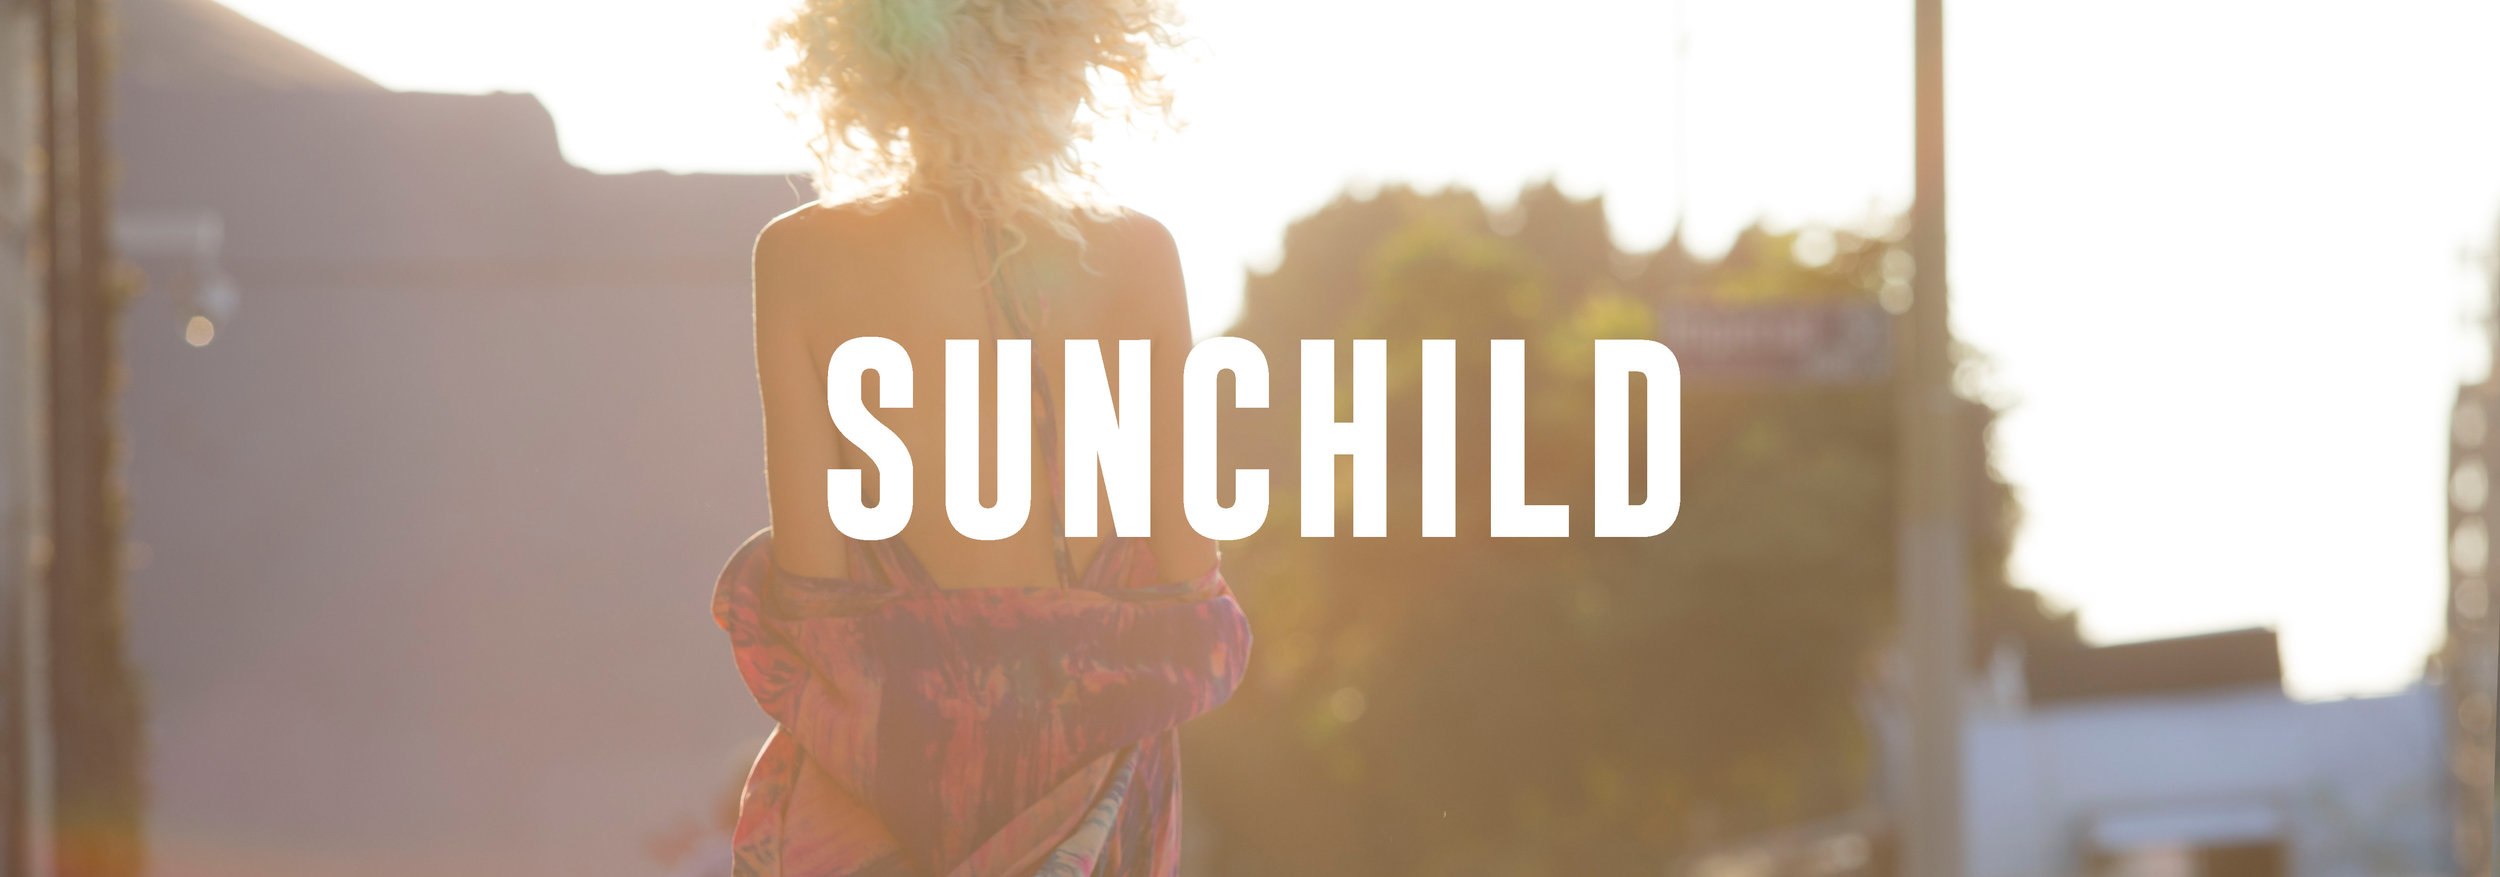 Sunchild_DTLA_TEMPLATE-01.jpg